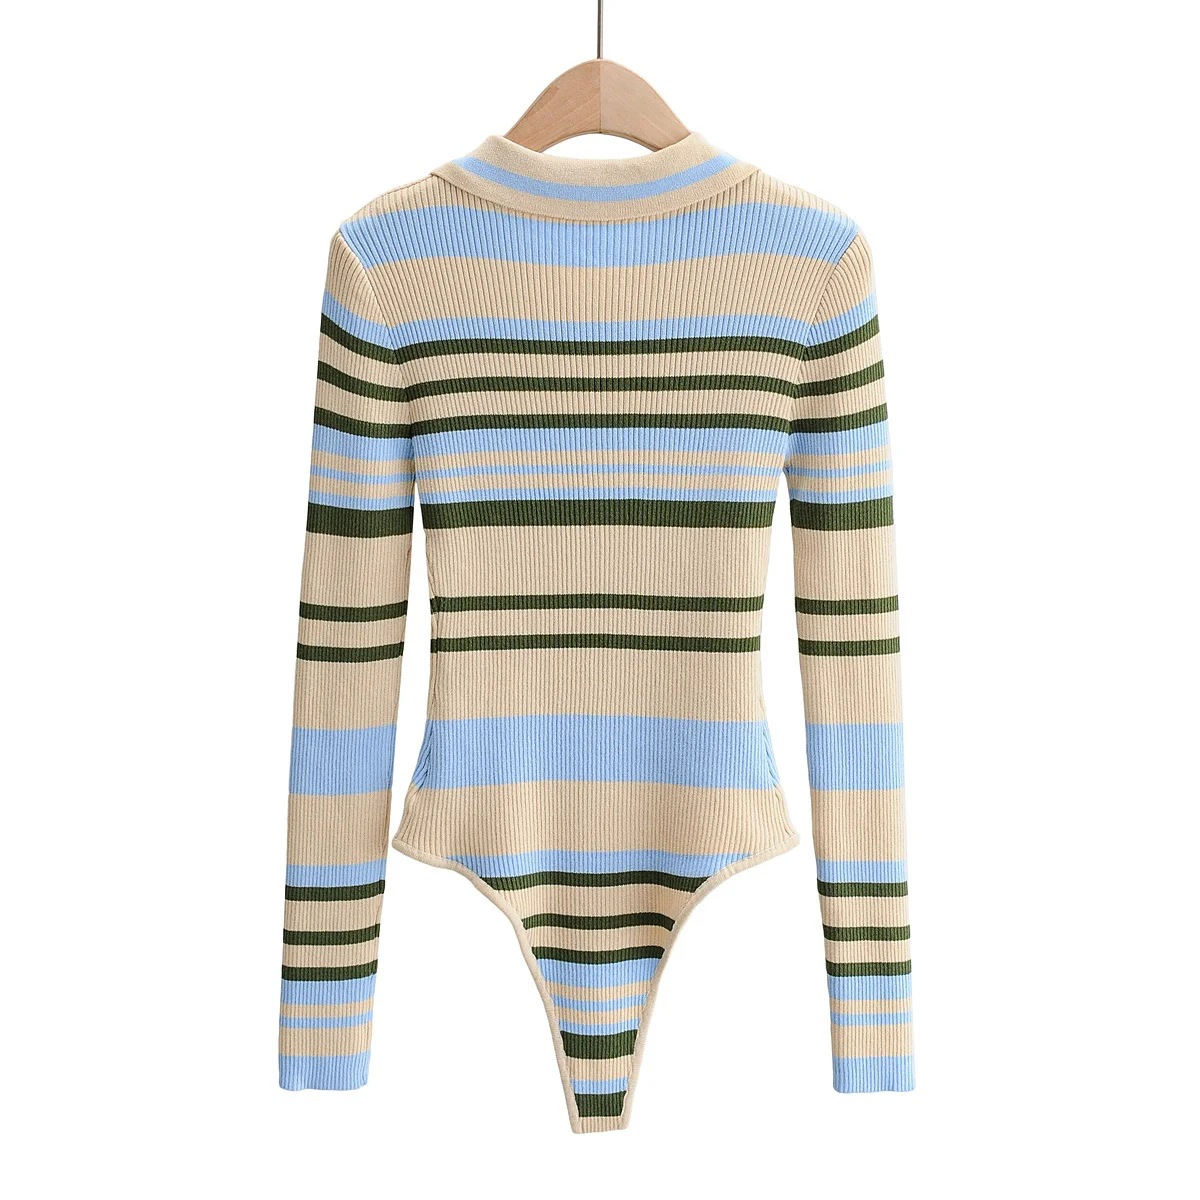 Ready To Ship Fall Winter High Quality Striped Sweater Long Sleeve Womens Bodysuits 2020